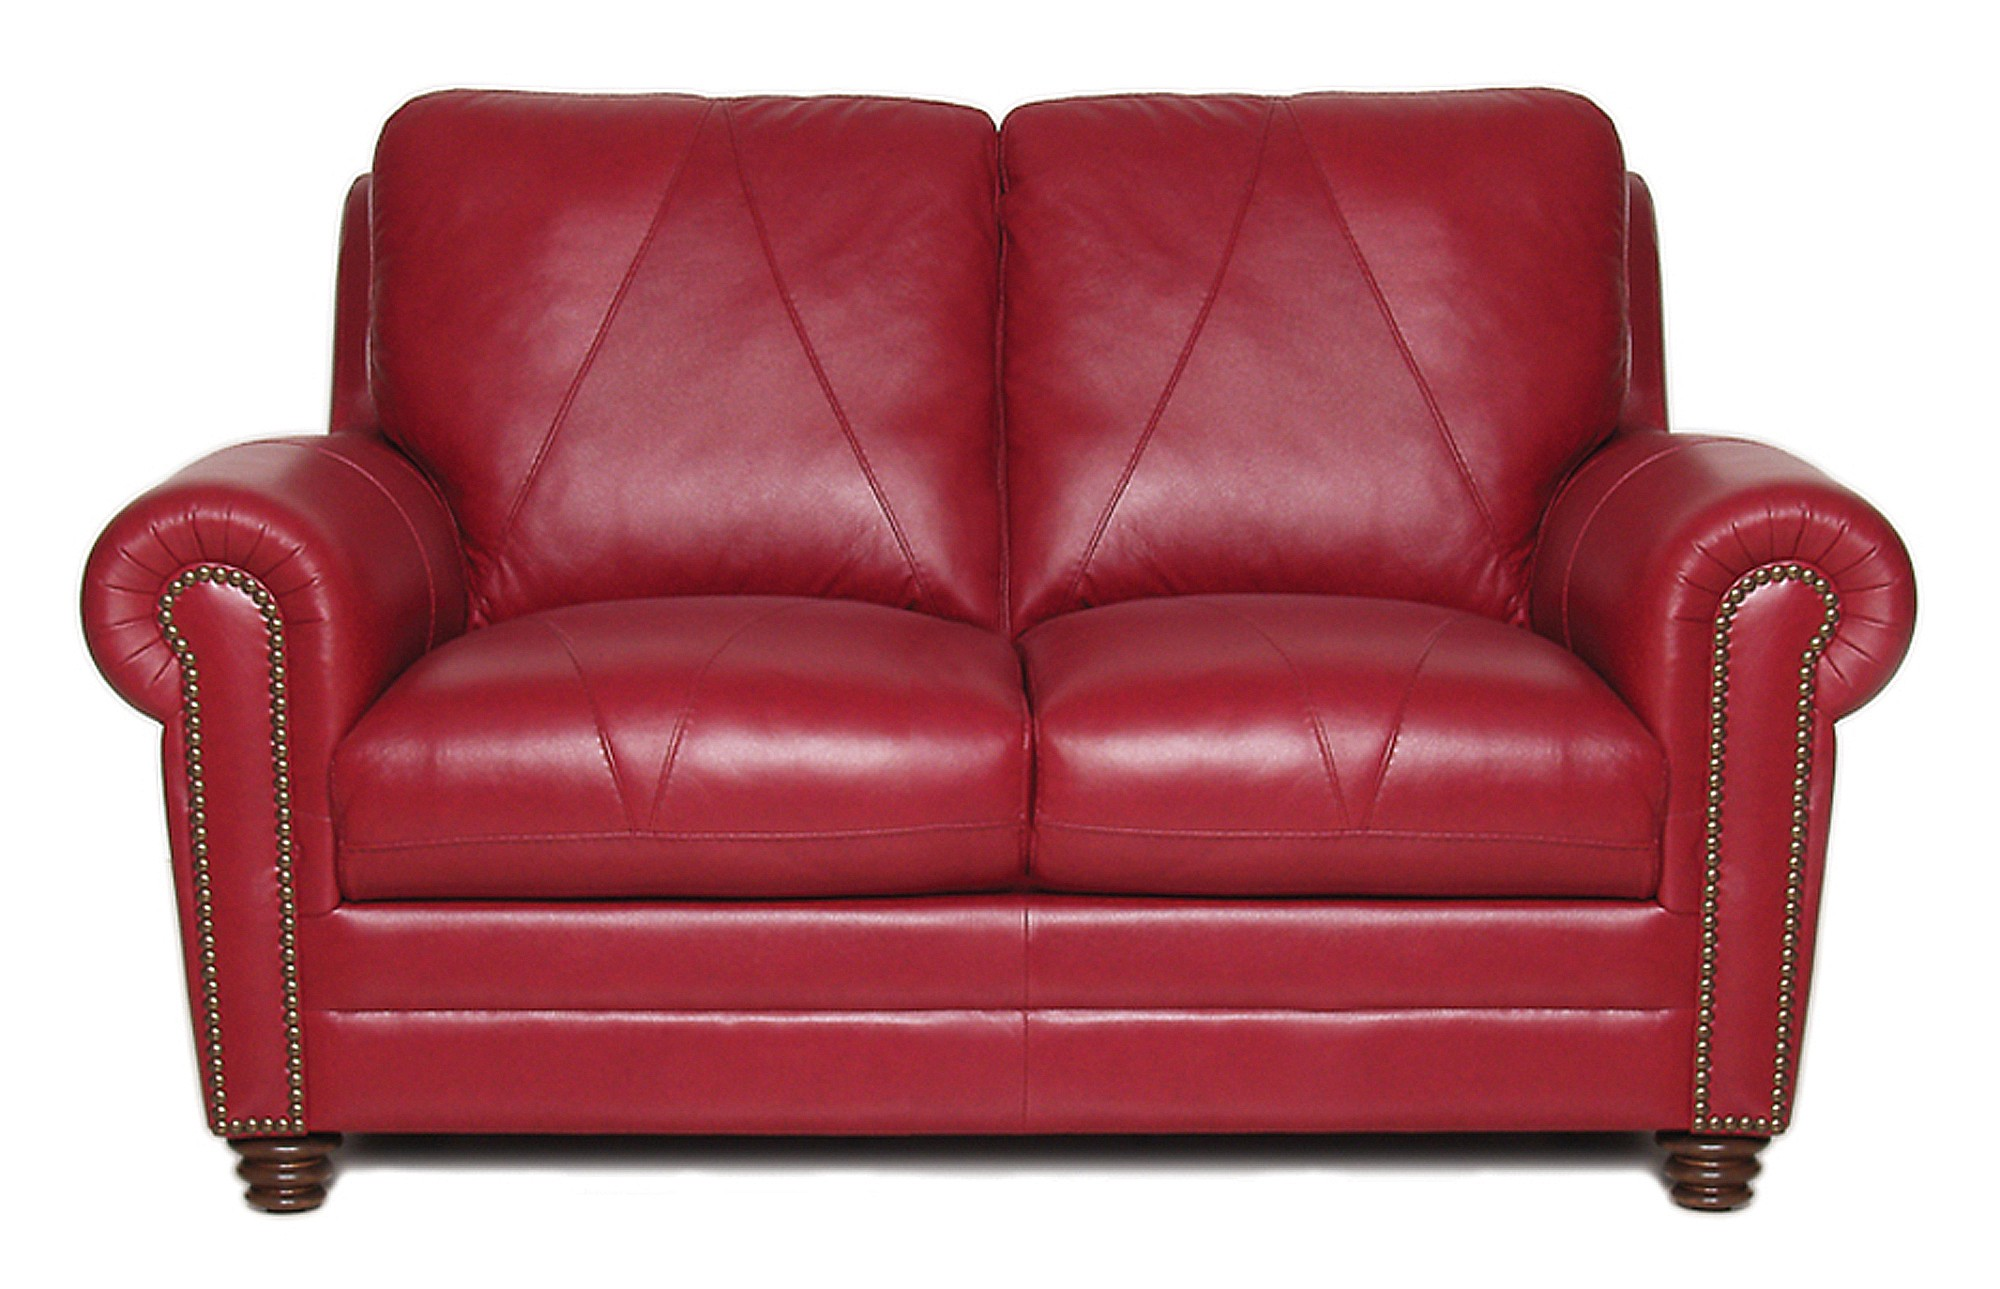 Garden Furniture Corner Sofa Ebay Weston Collection Luke Leather Furniture